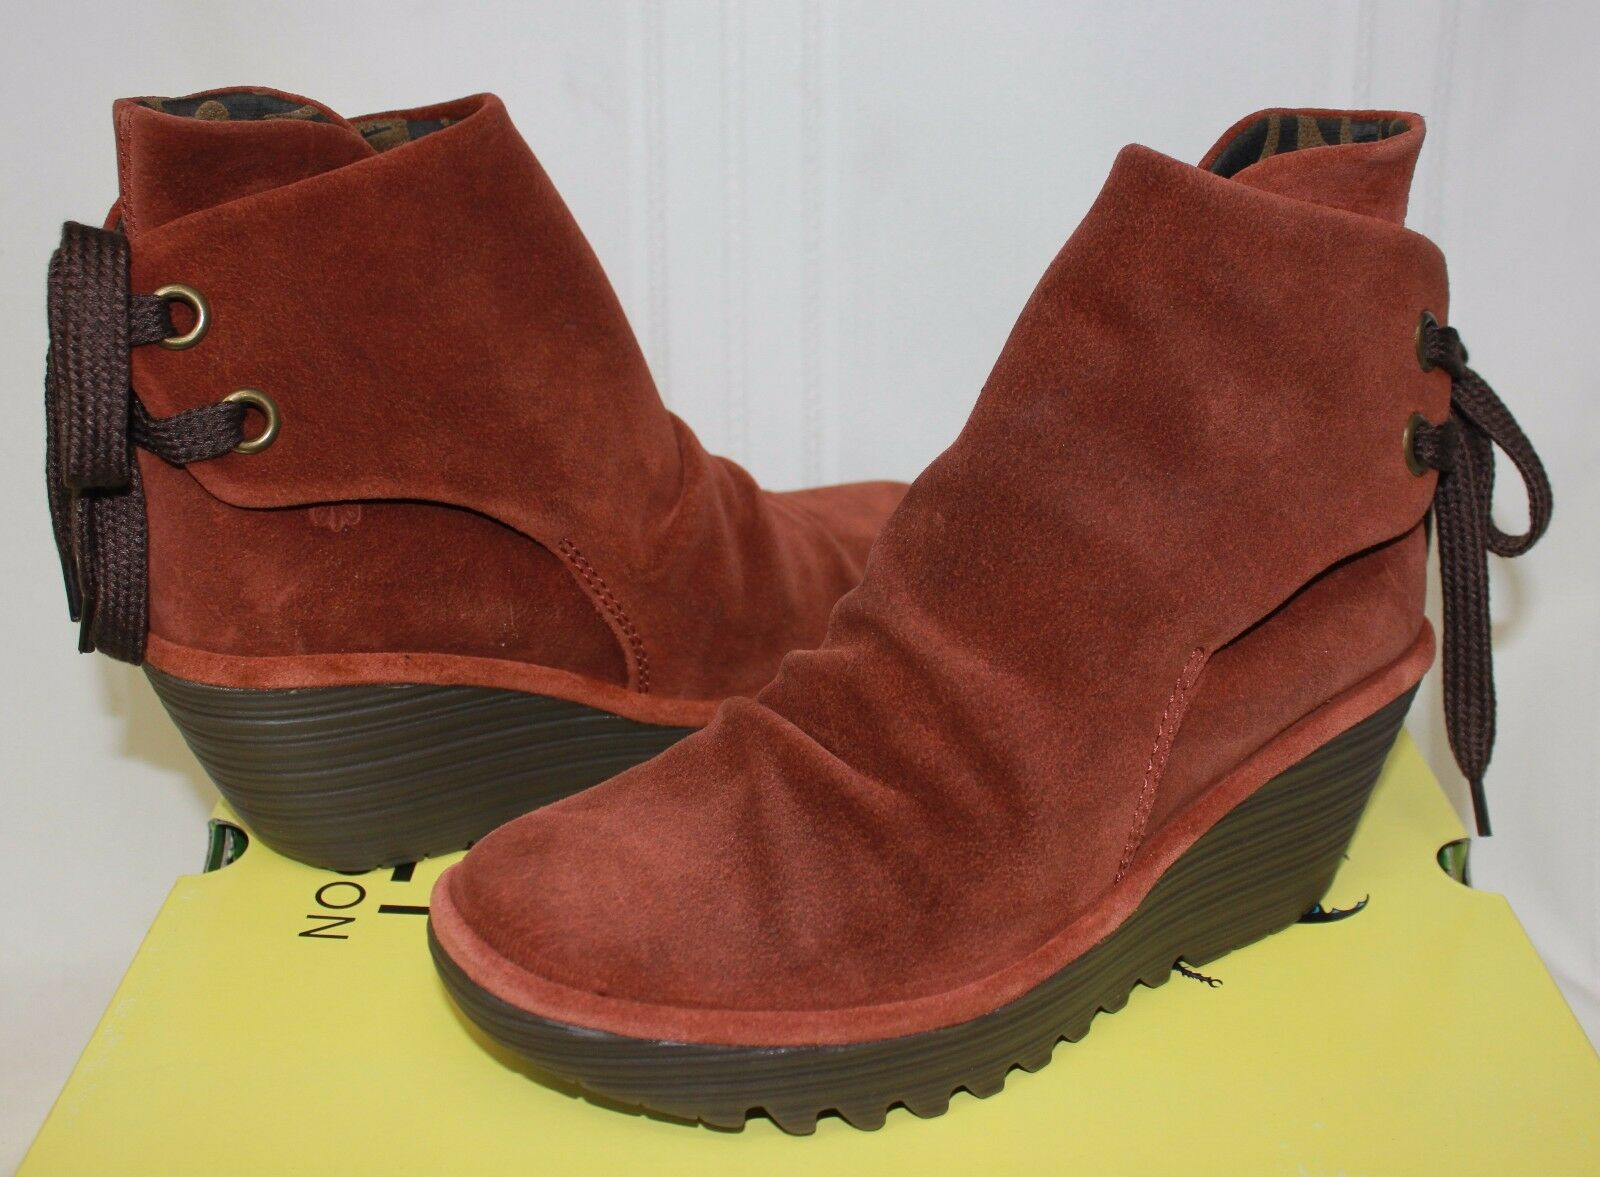 FLY LONDON Yama Wedges Brick Oil suede Boots New With Box!